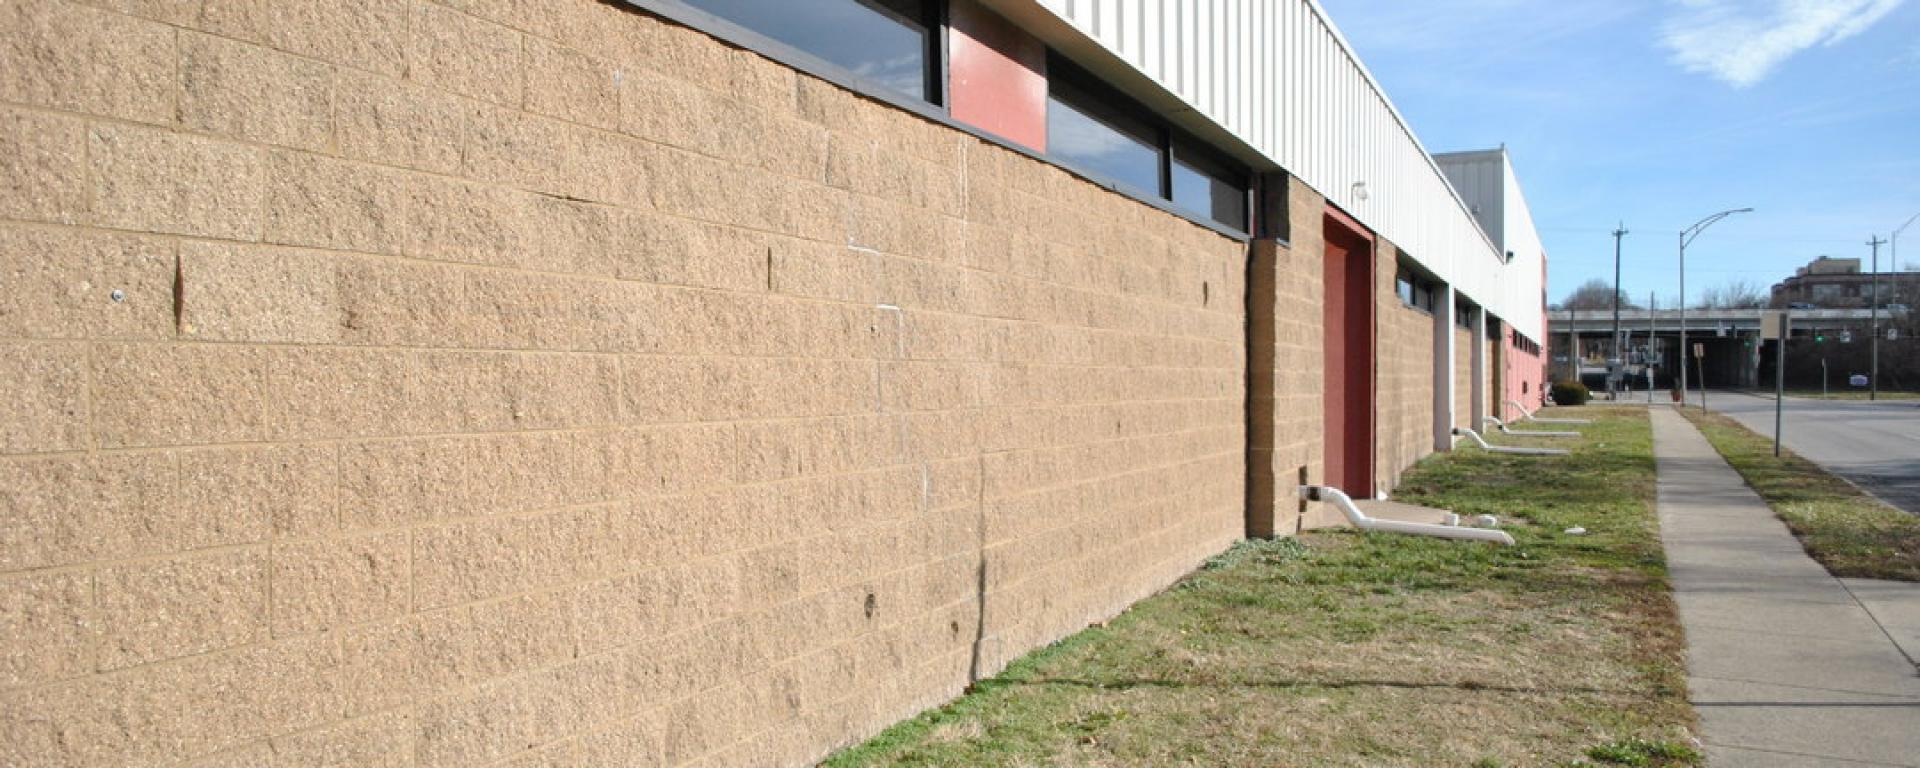 Side view of Cincinnati Public Library Distribution Center drainage system